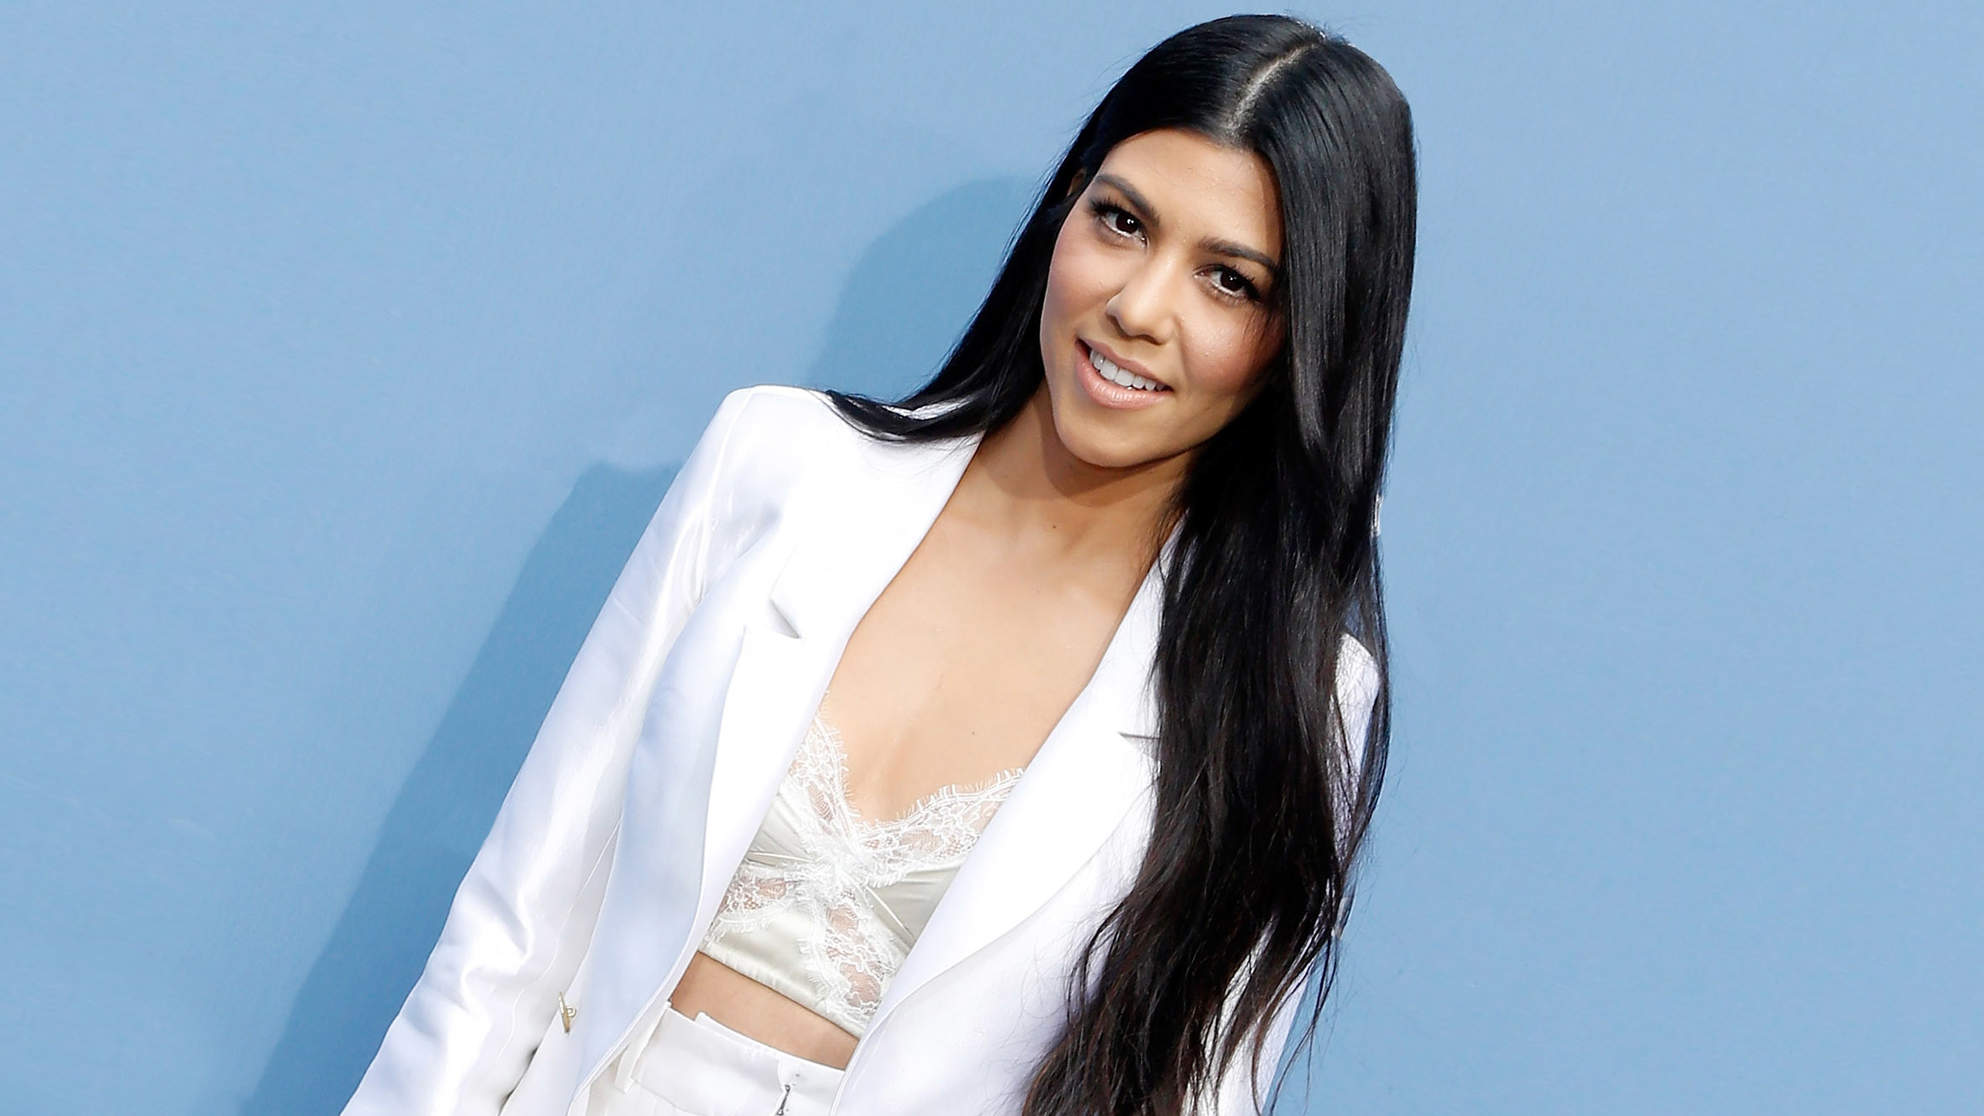 Kourtney Kardashian Says Co-Sleeping Has 'Really Worked' at Her House: 'We All Got More Sleep'